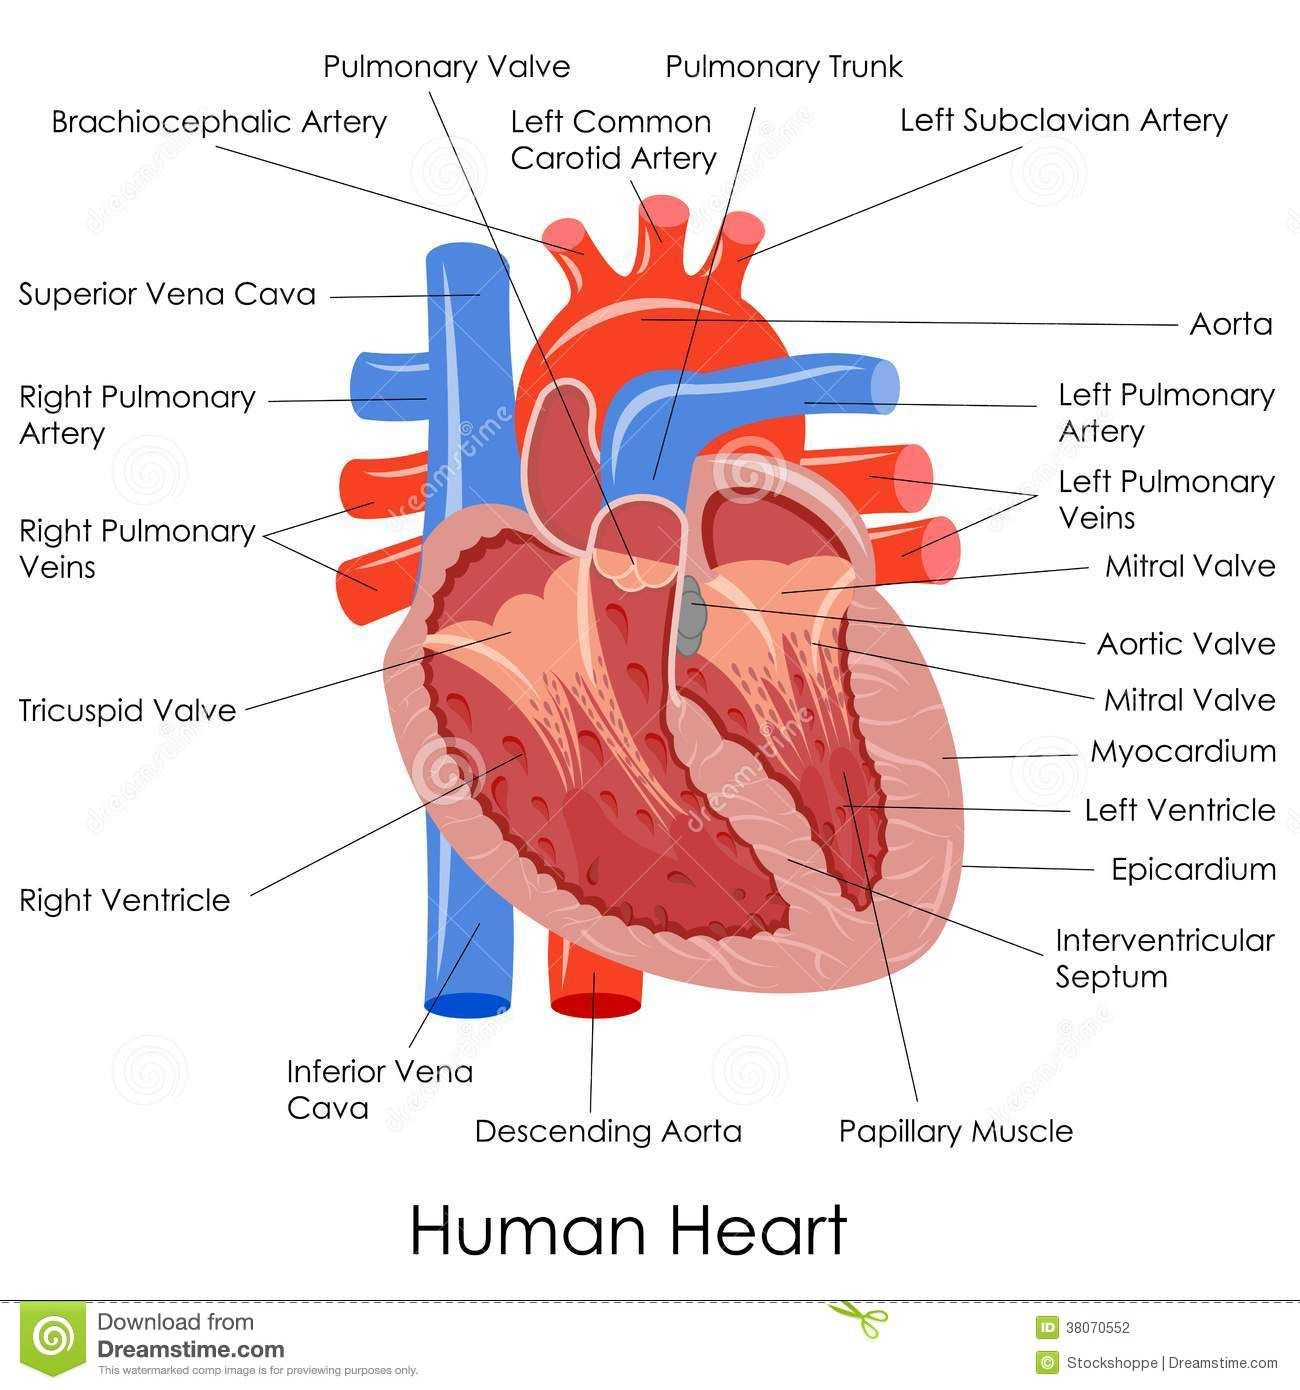 Human Heart Anatomy Human Heart Anatomy Human Heart Diagram Heart Anatomy